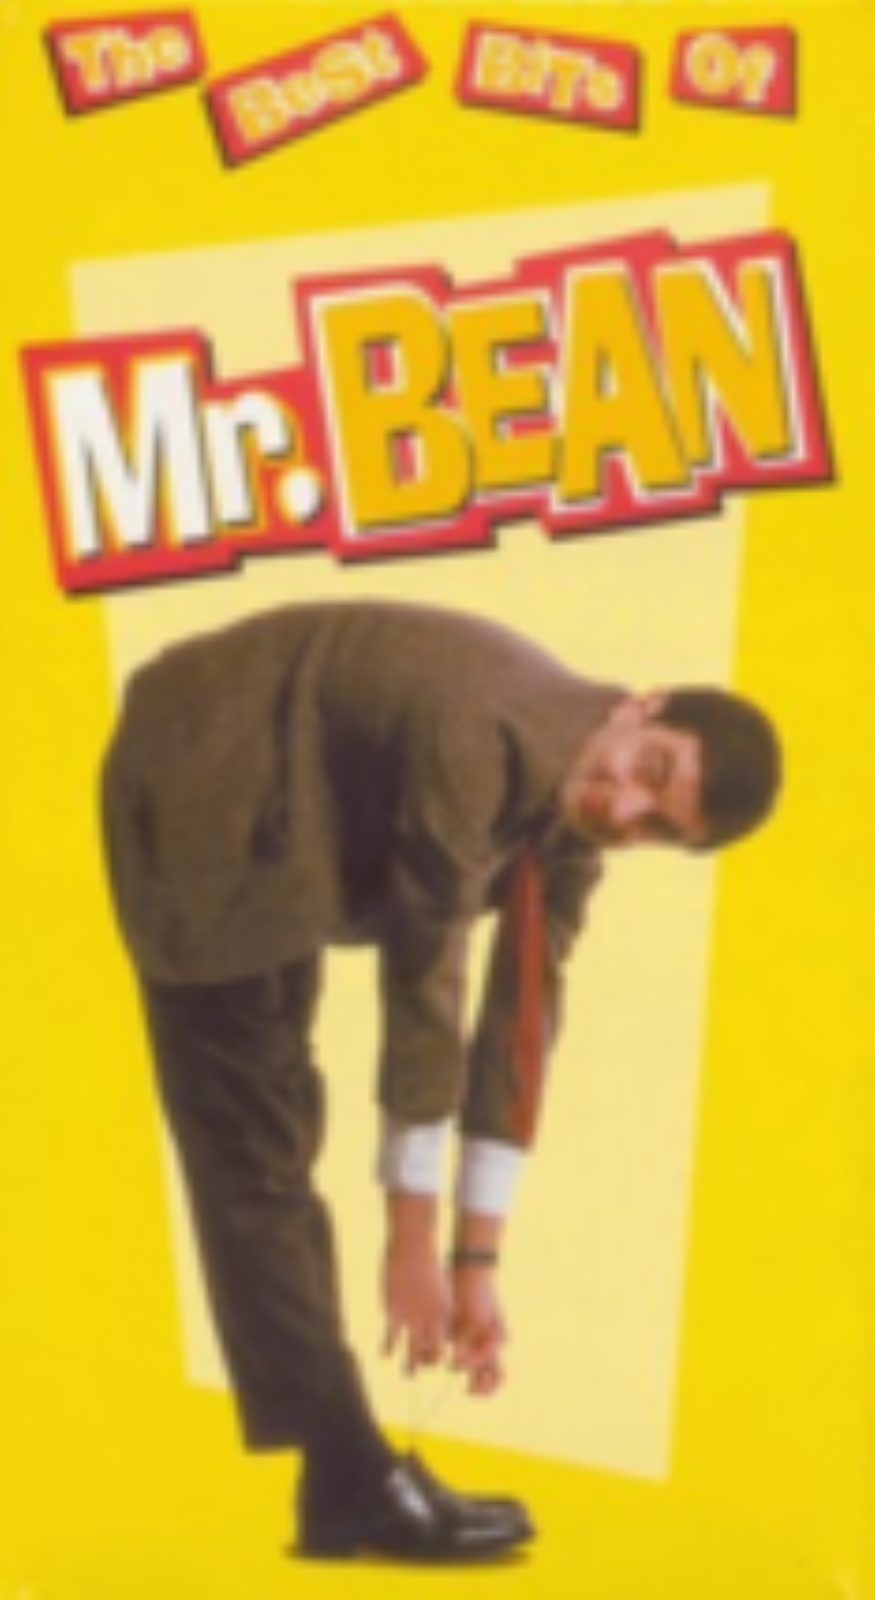 The Best Bits of Mr. Bean Vhs